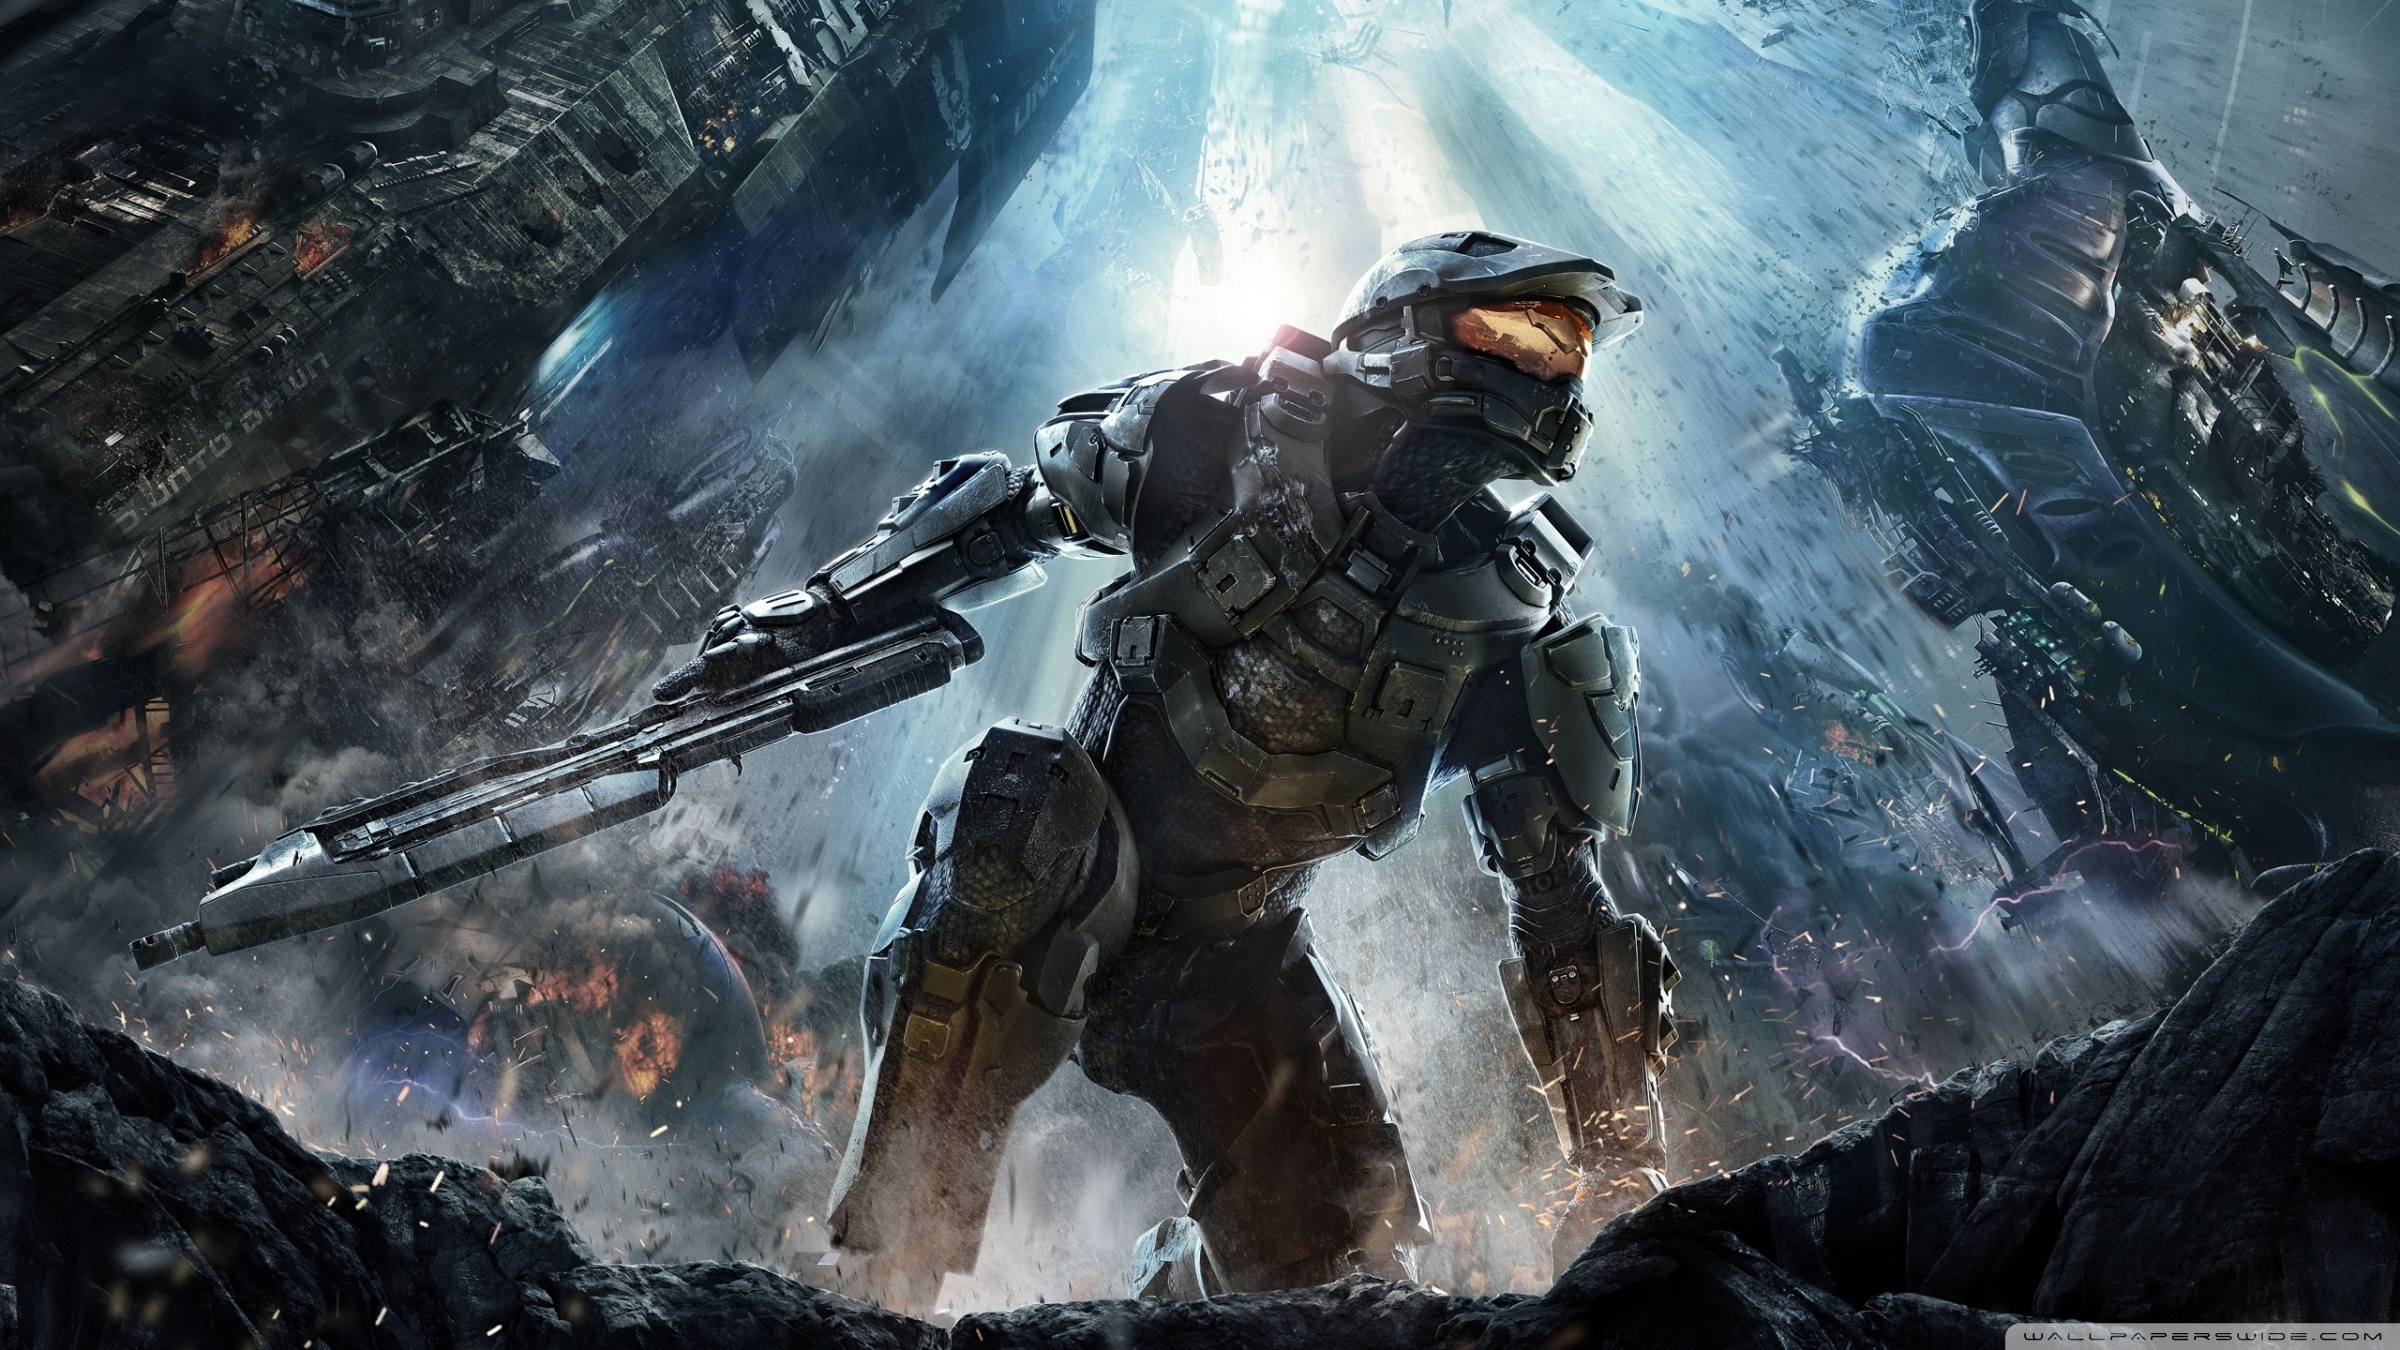 halo 4 (2012) ❤ 4k hd desktop wallpaper for 4k ultra hd tv • dual